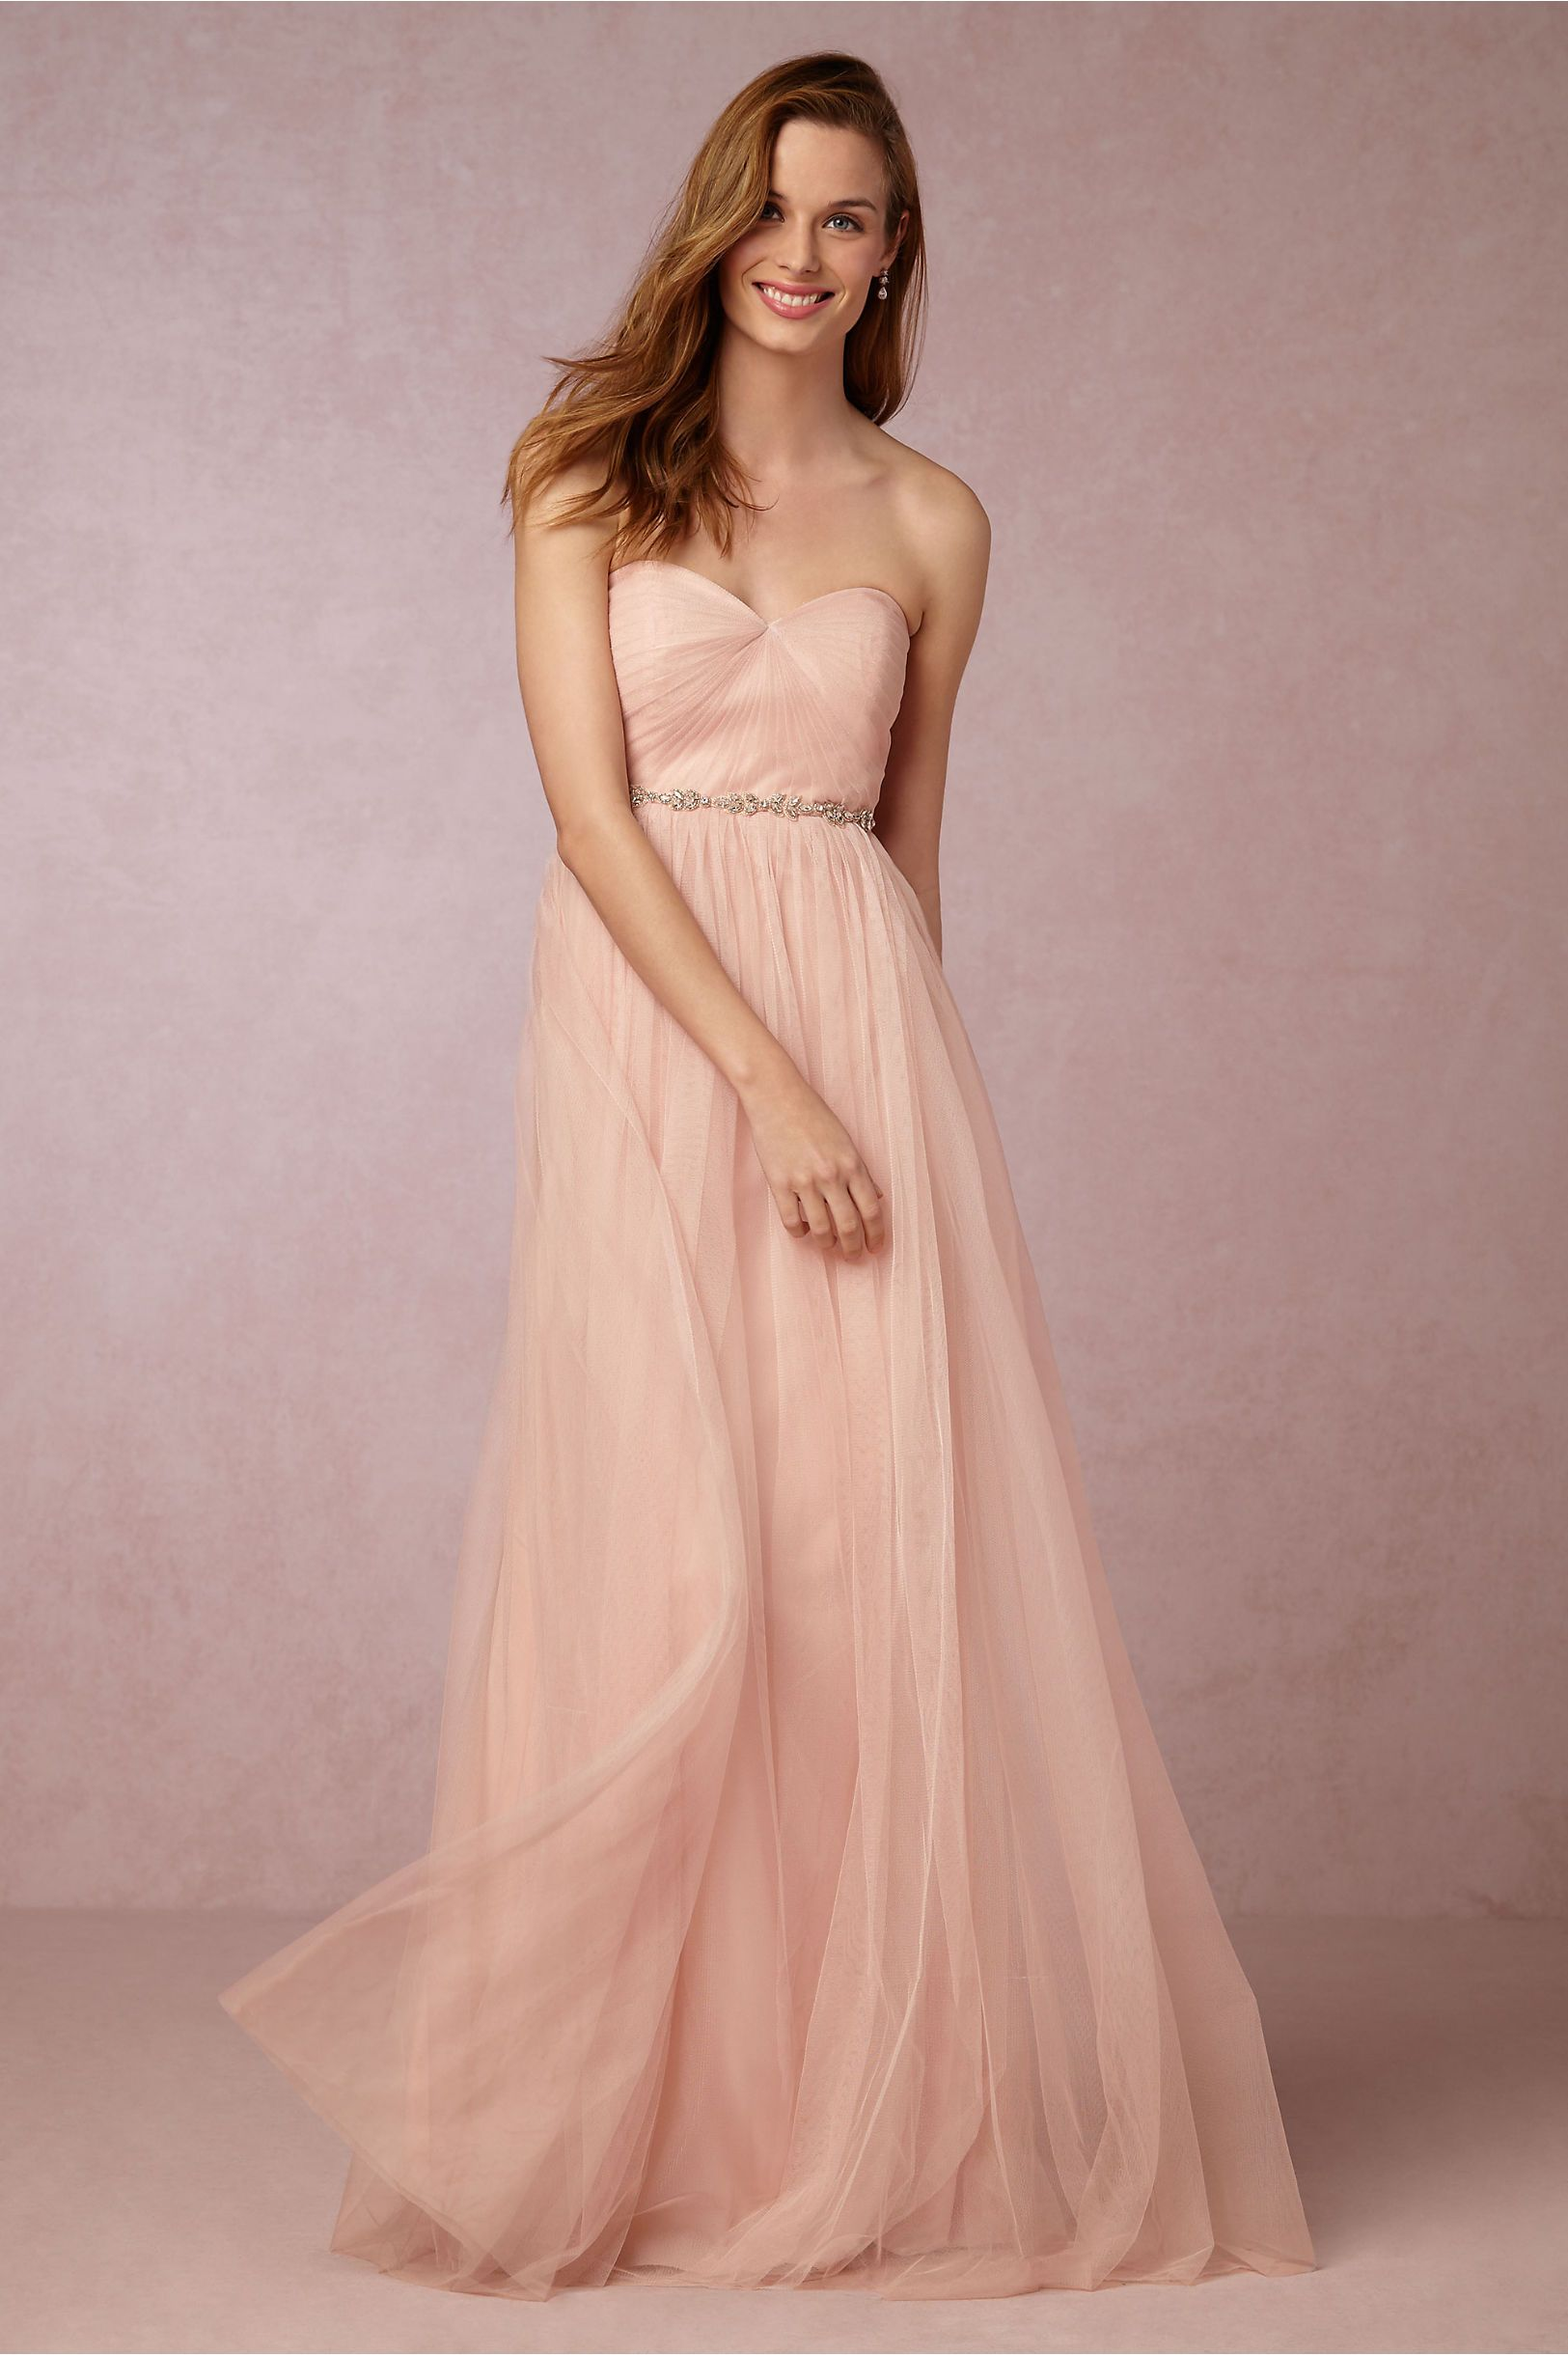 Bhldn annabelle dress in bridesmaids bridesmaid dresses long at bhldn annabelle dress in bridesmaids bridesmaid dresses long at bhldn ombrellifo Image collections